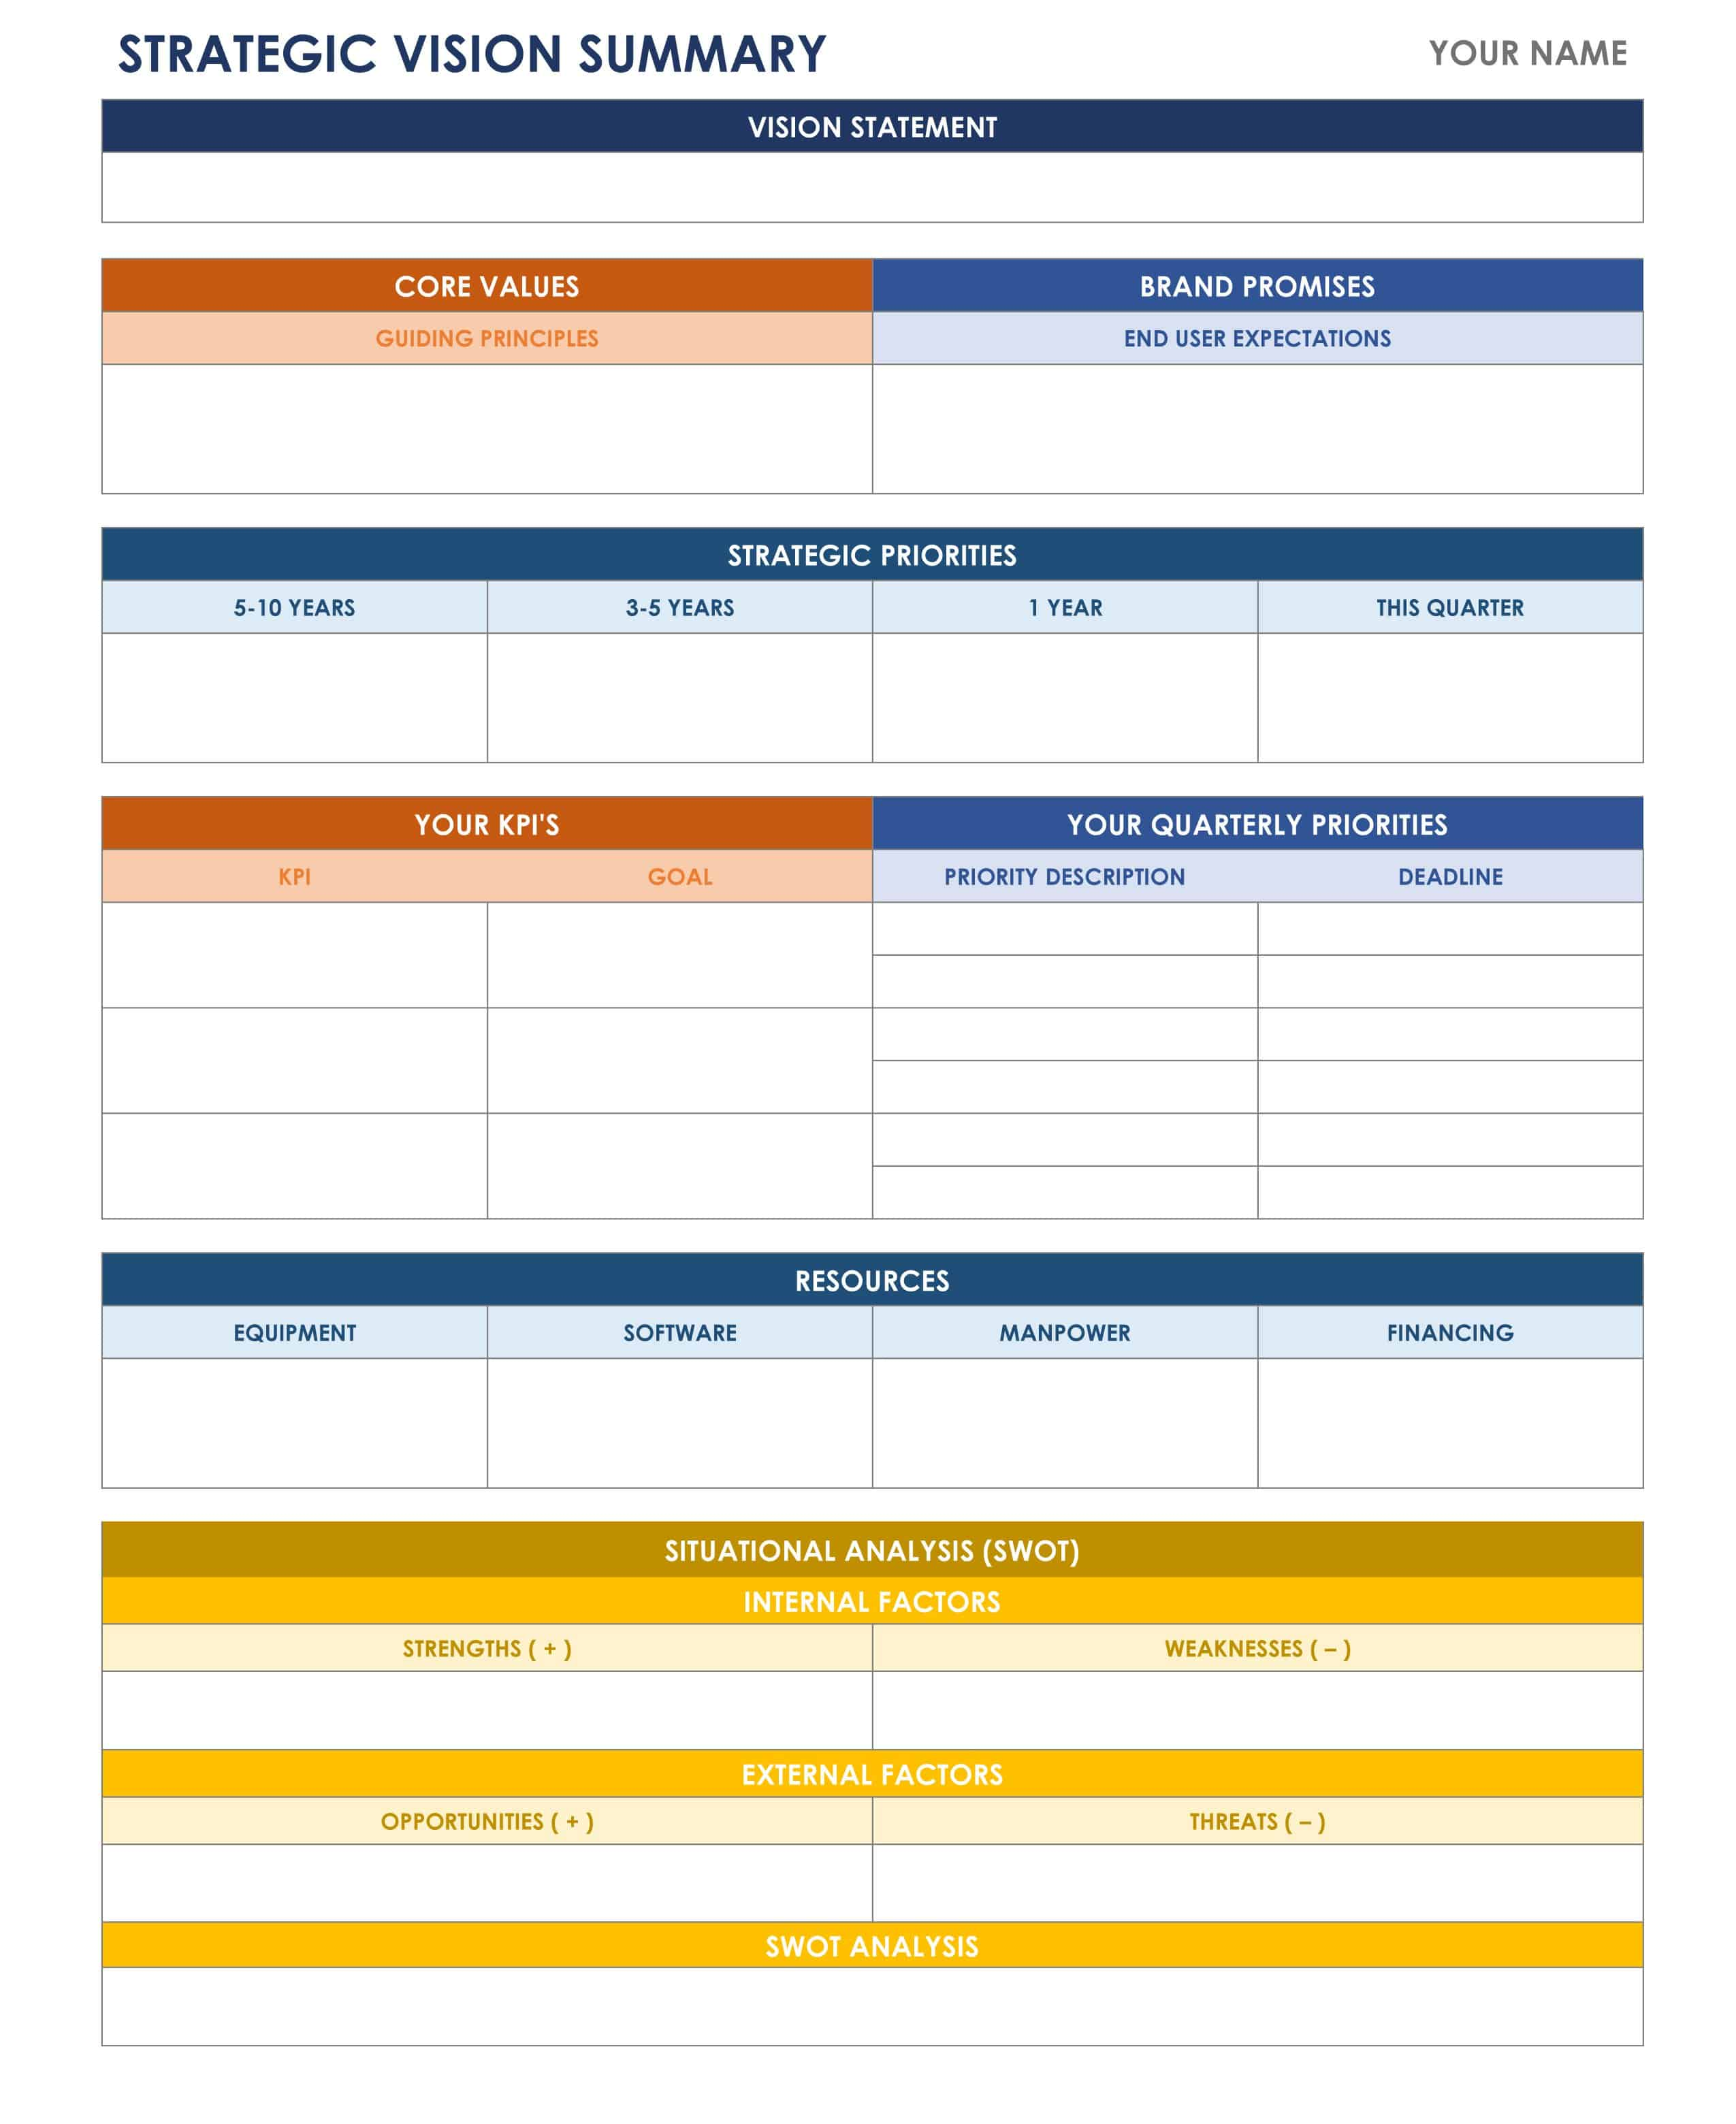 Free Strategic Planning Templates Smartsheet - Business plan framework template